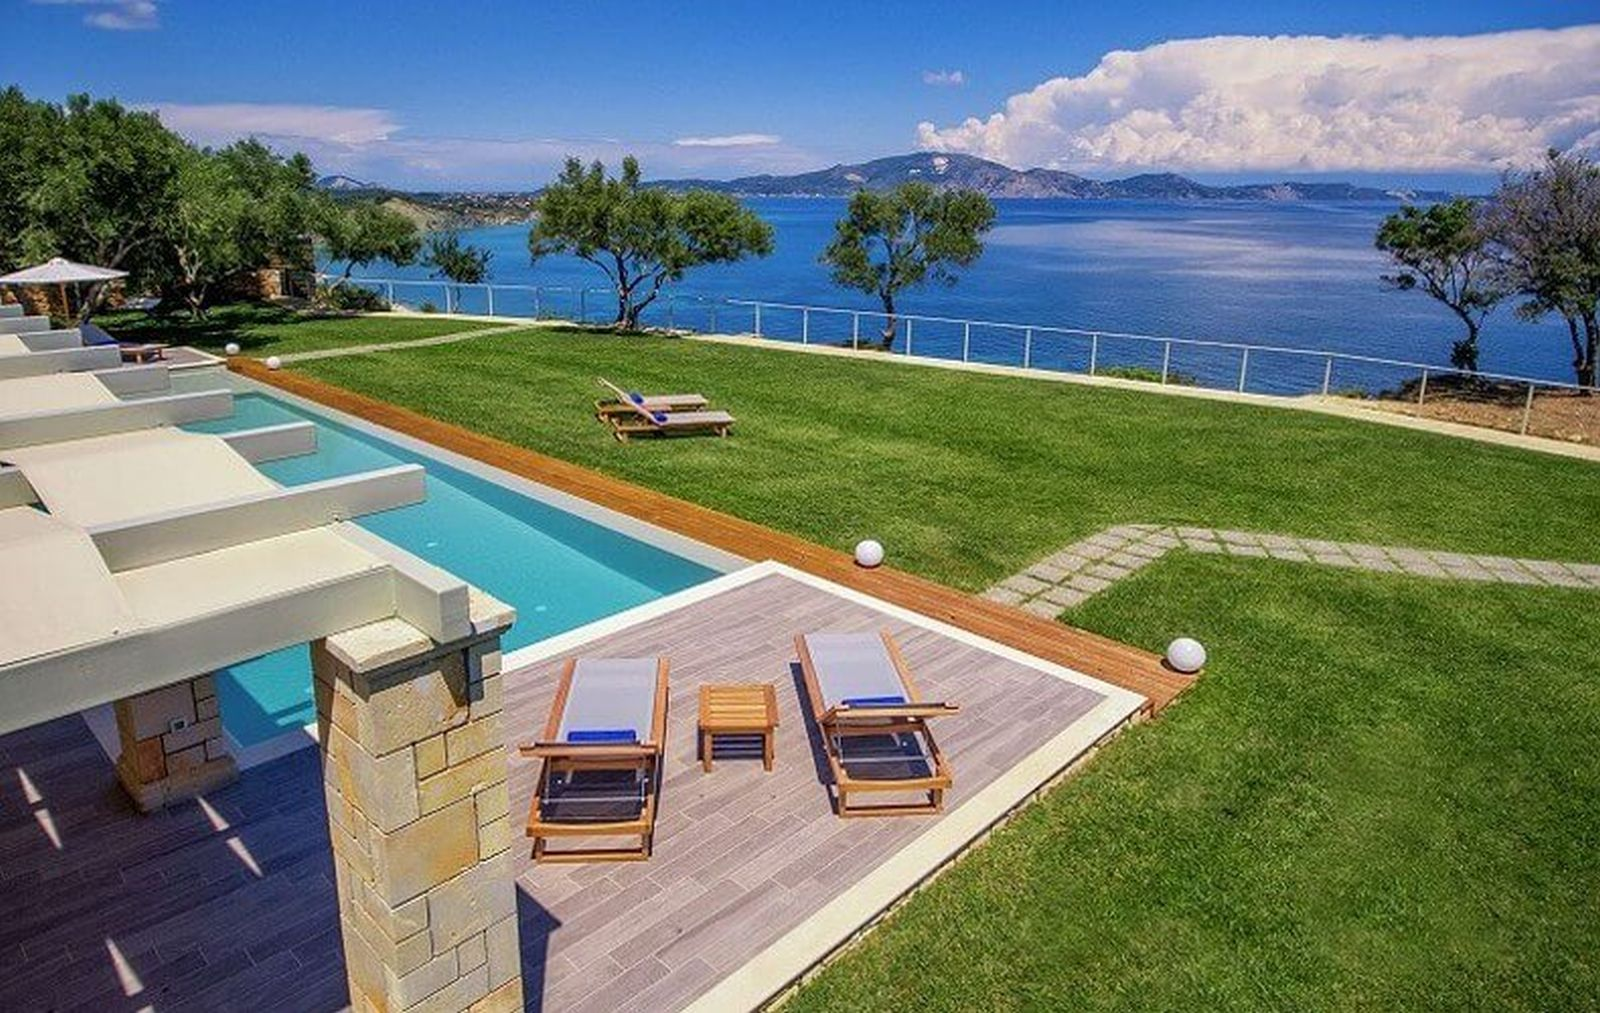 Pure Indulgence: 5 Reasons to Book a Villa on Your Trip to Greece